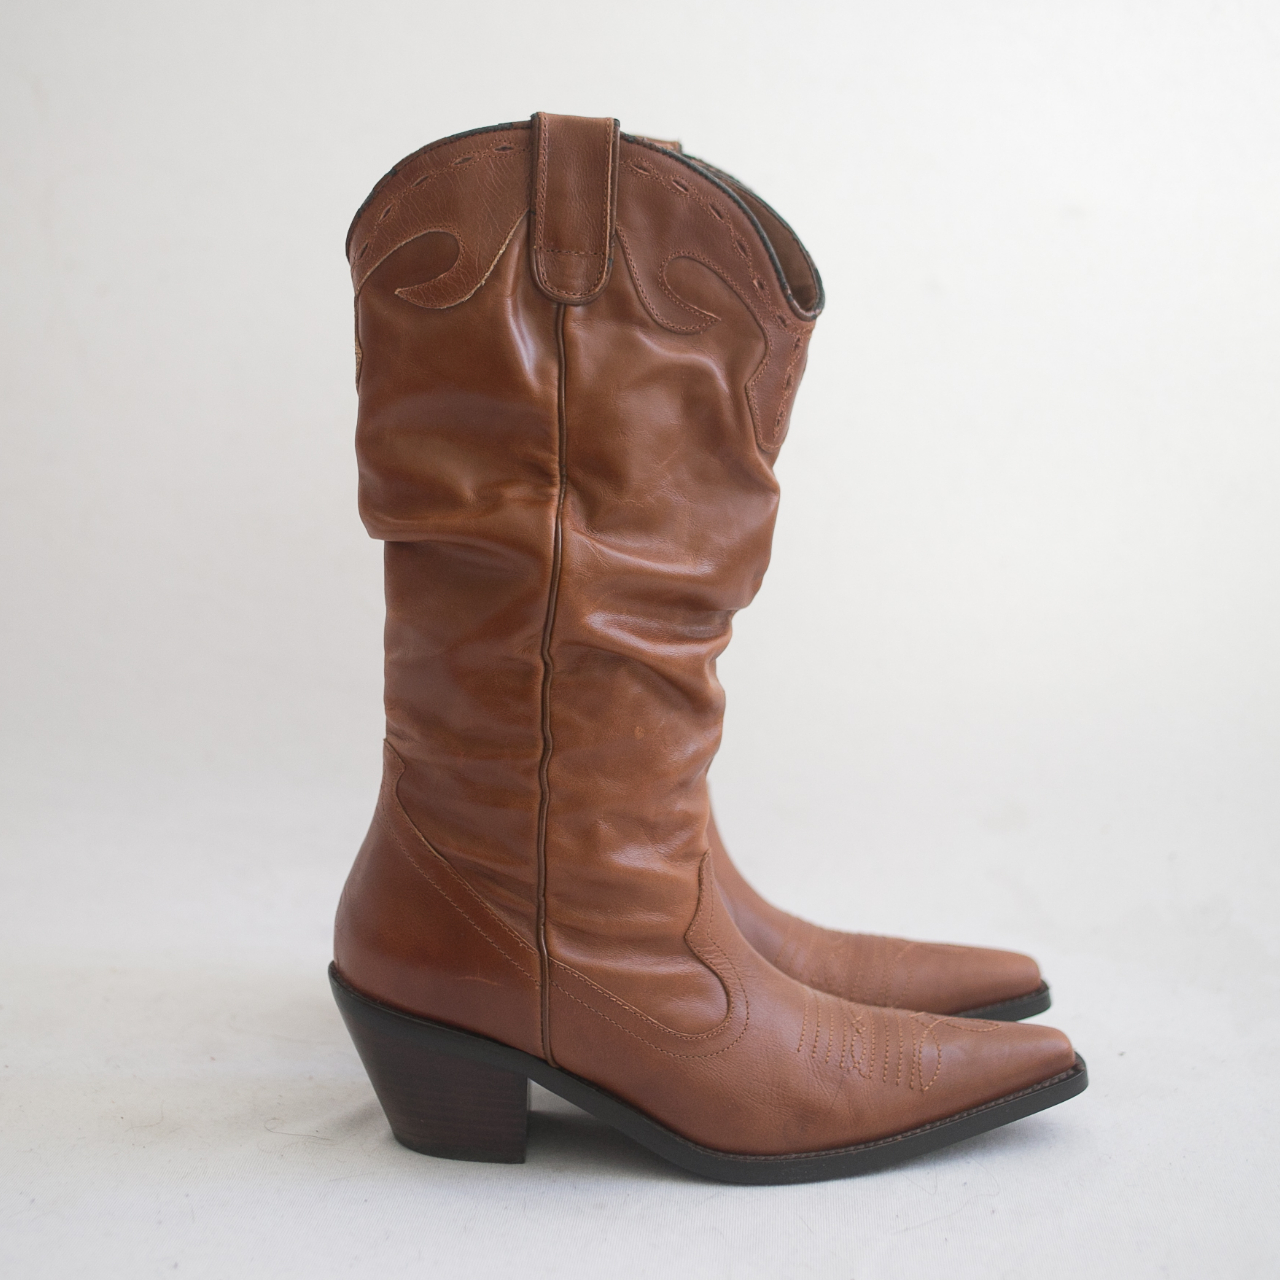 Amazing tan slouchy cowboy boots